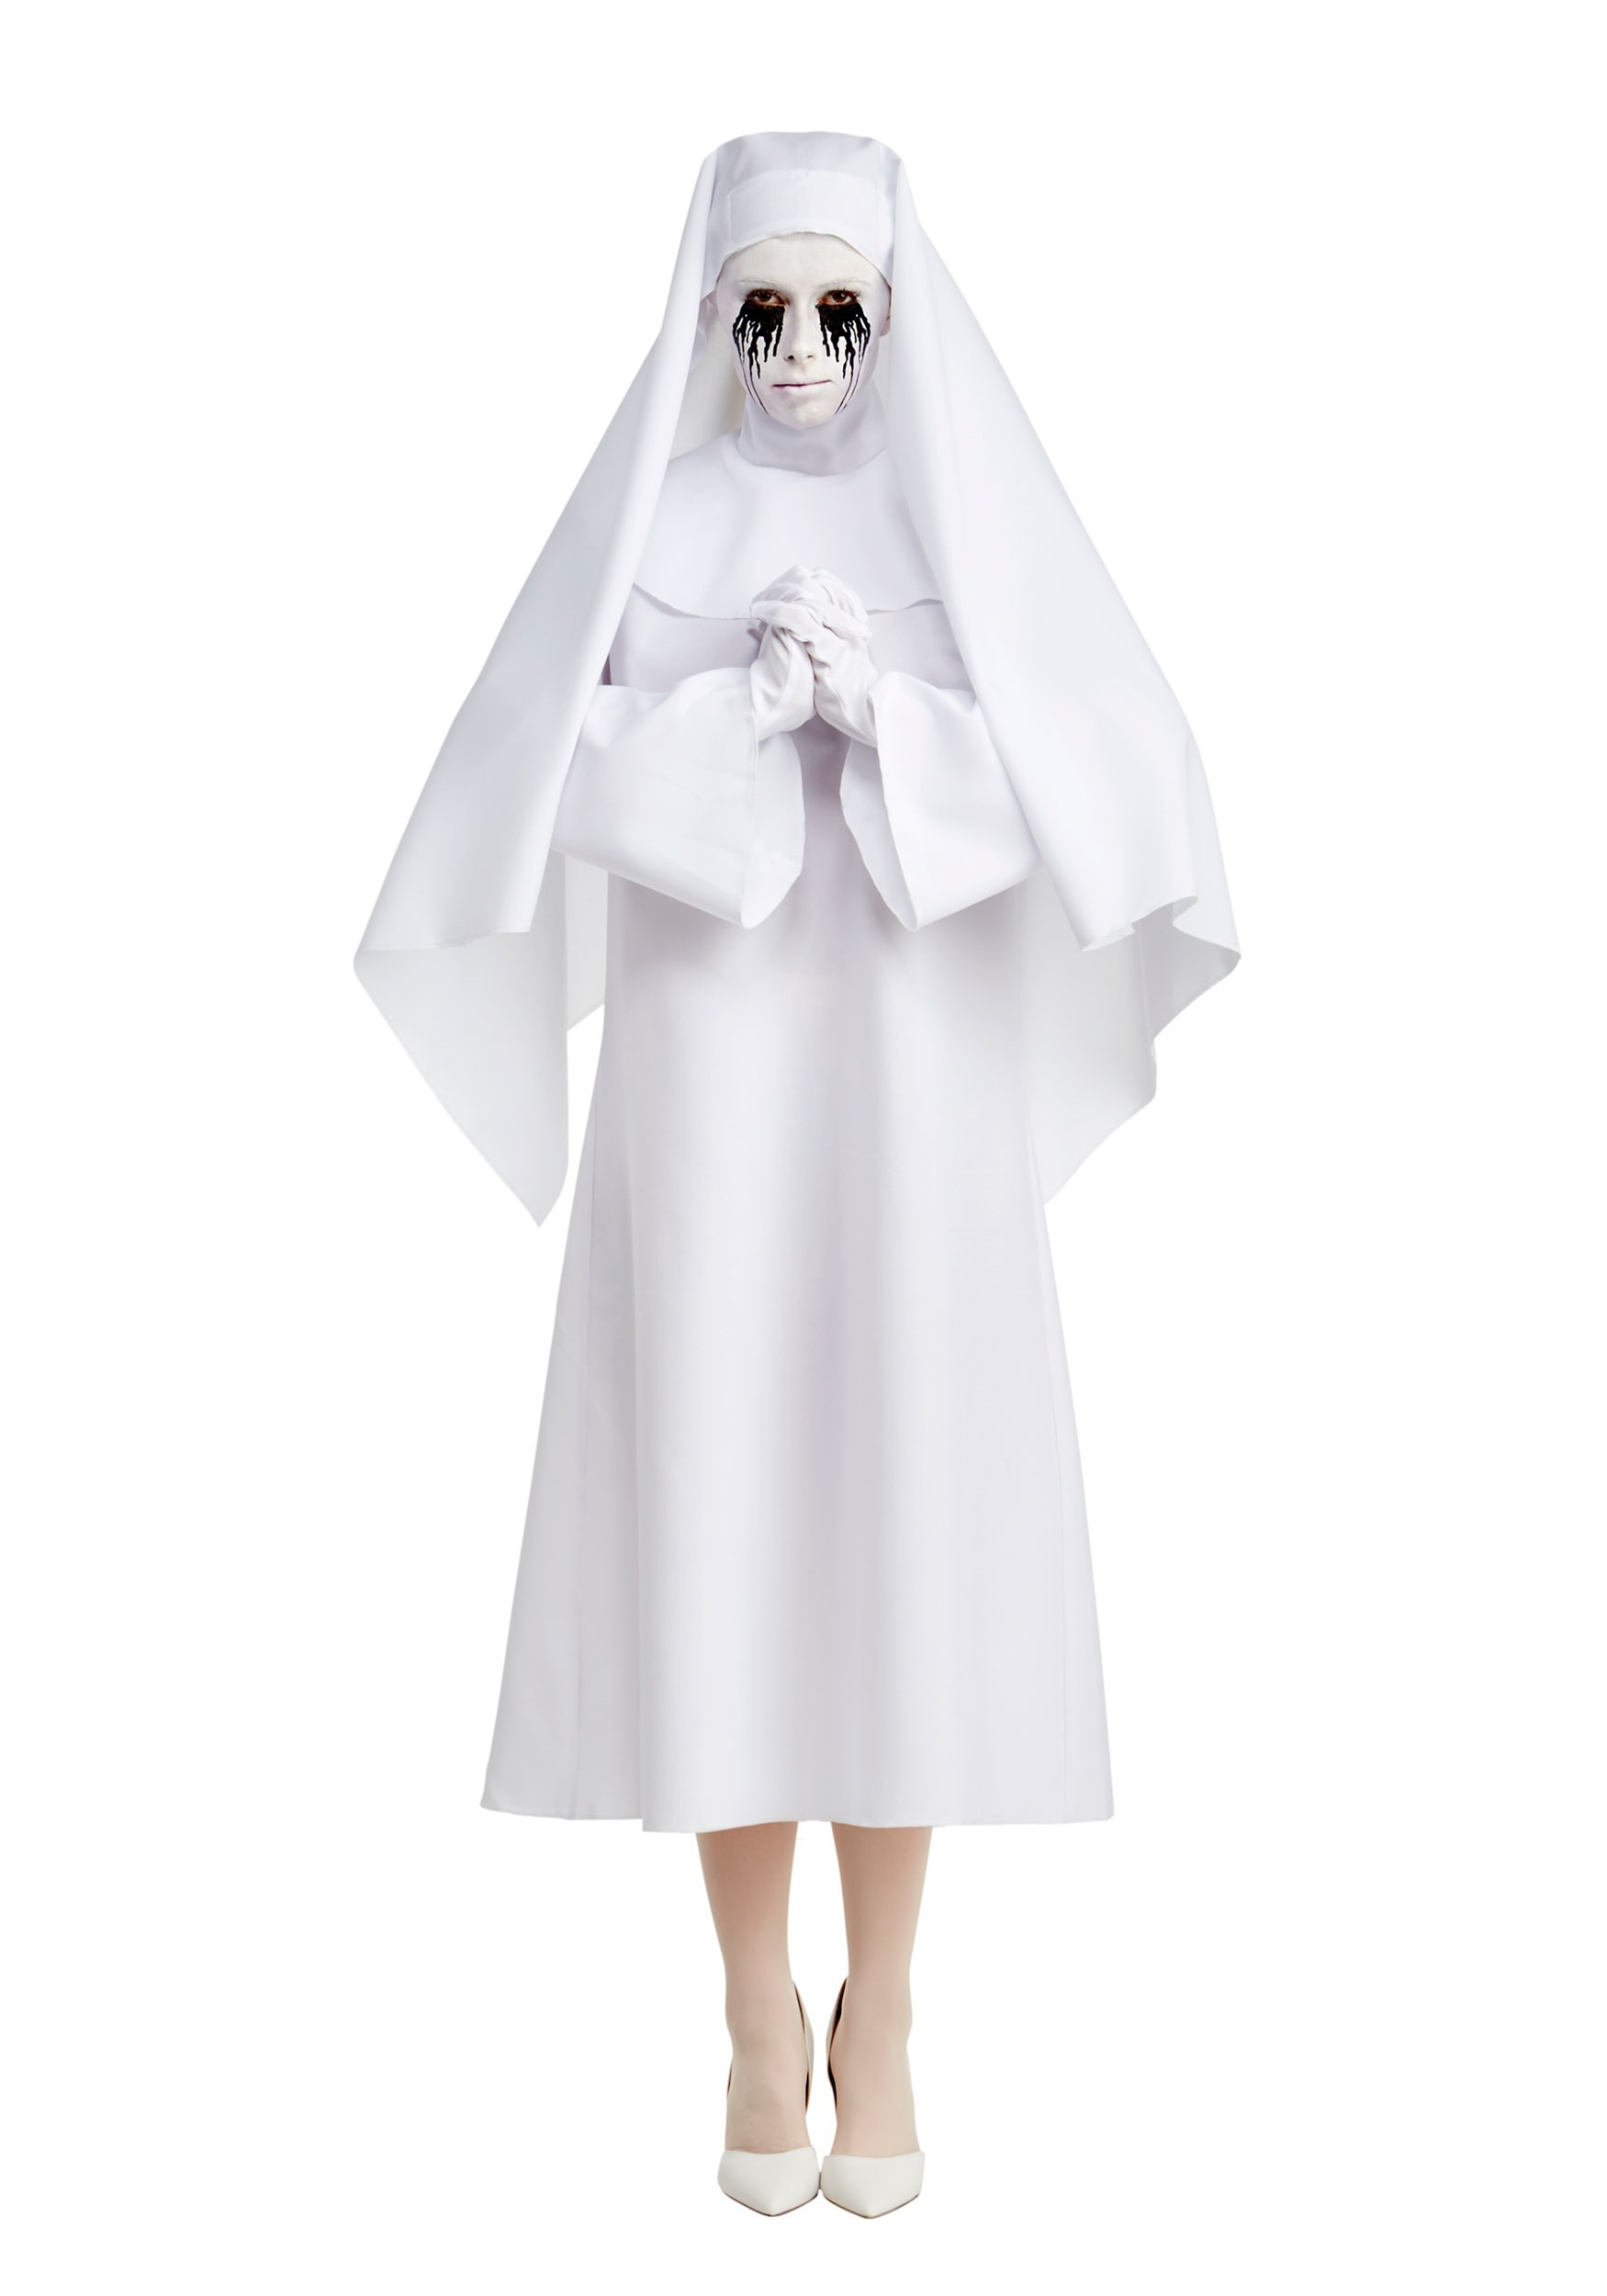 INOpets.com Anything for Pets Parents & Their Pets American Horror Story The White Nun Deluxe Costume for Women